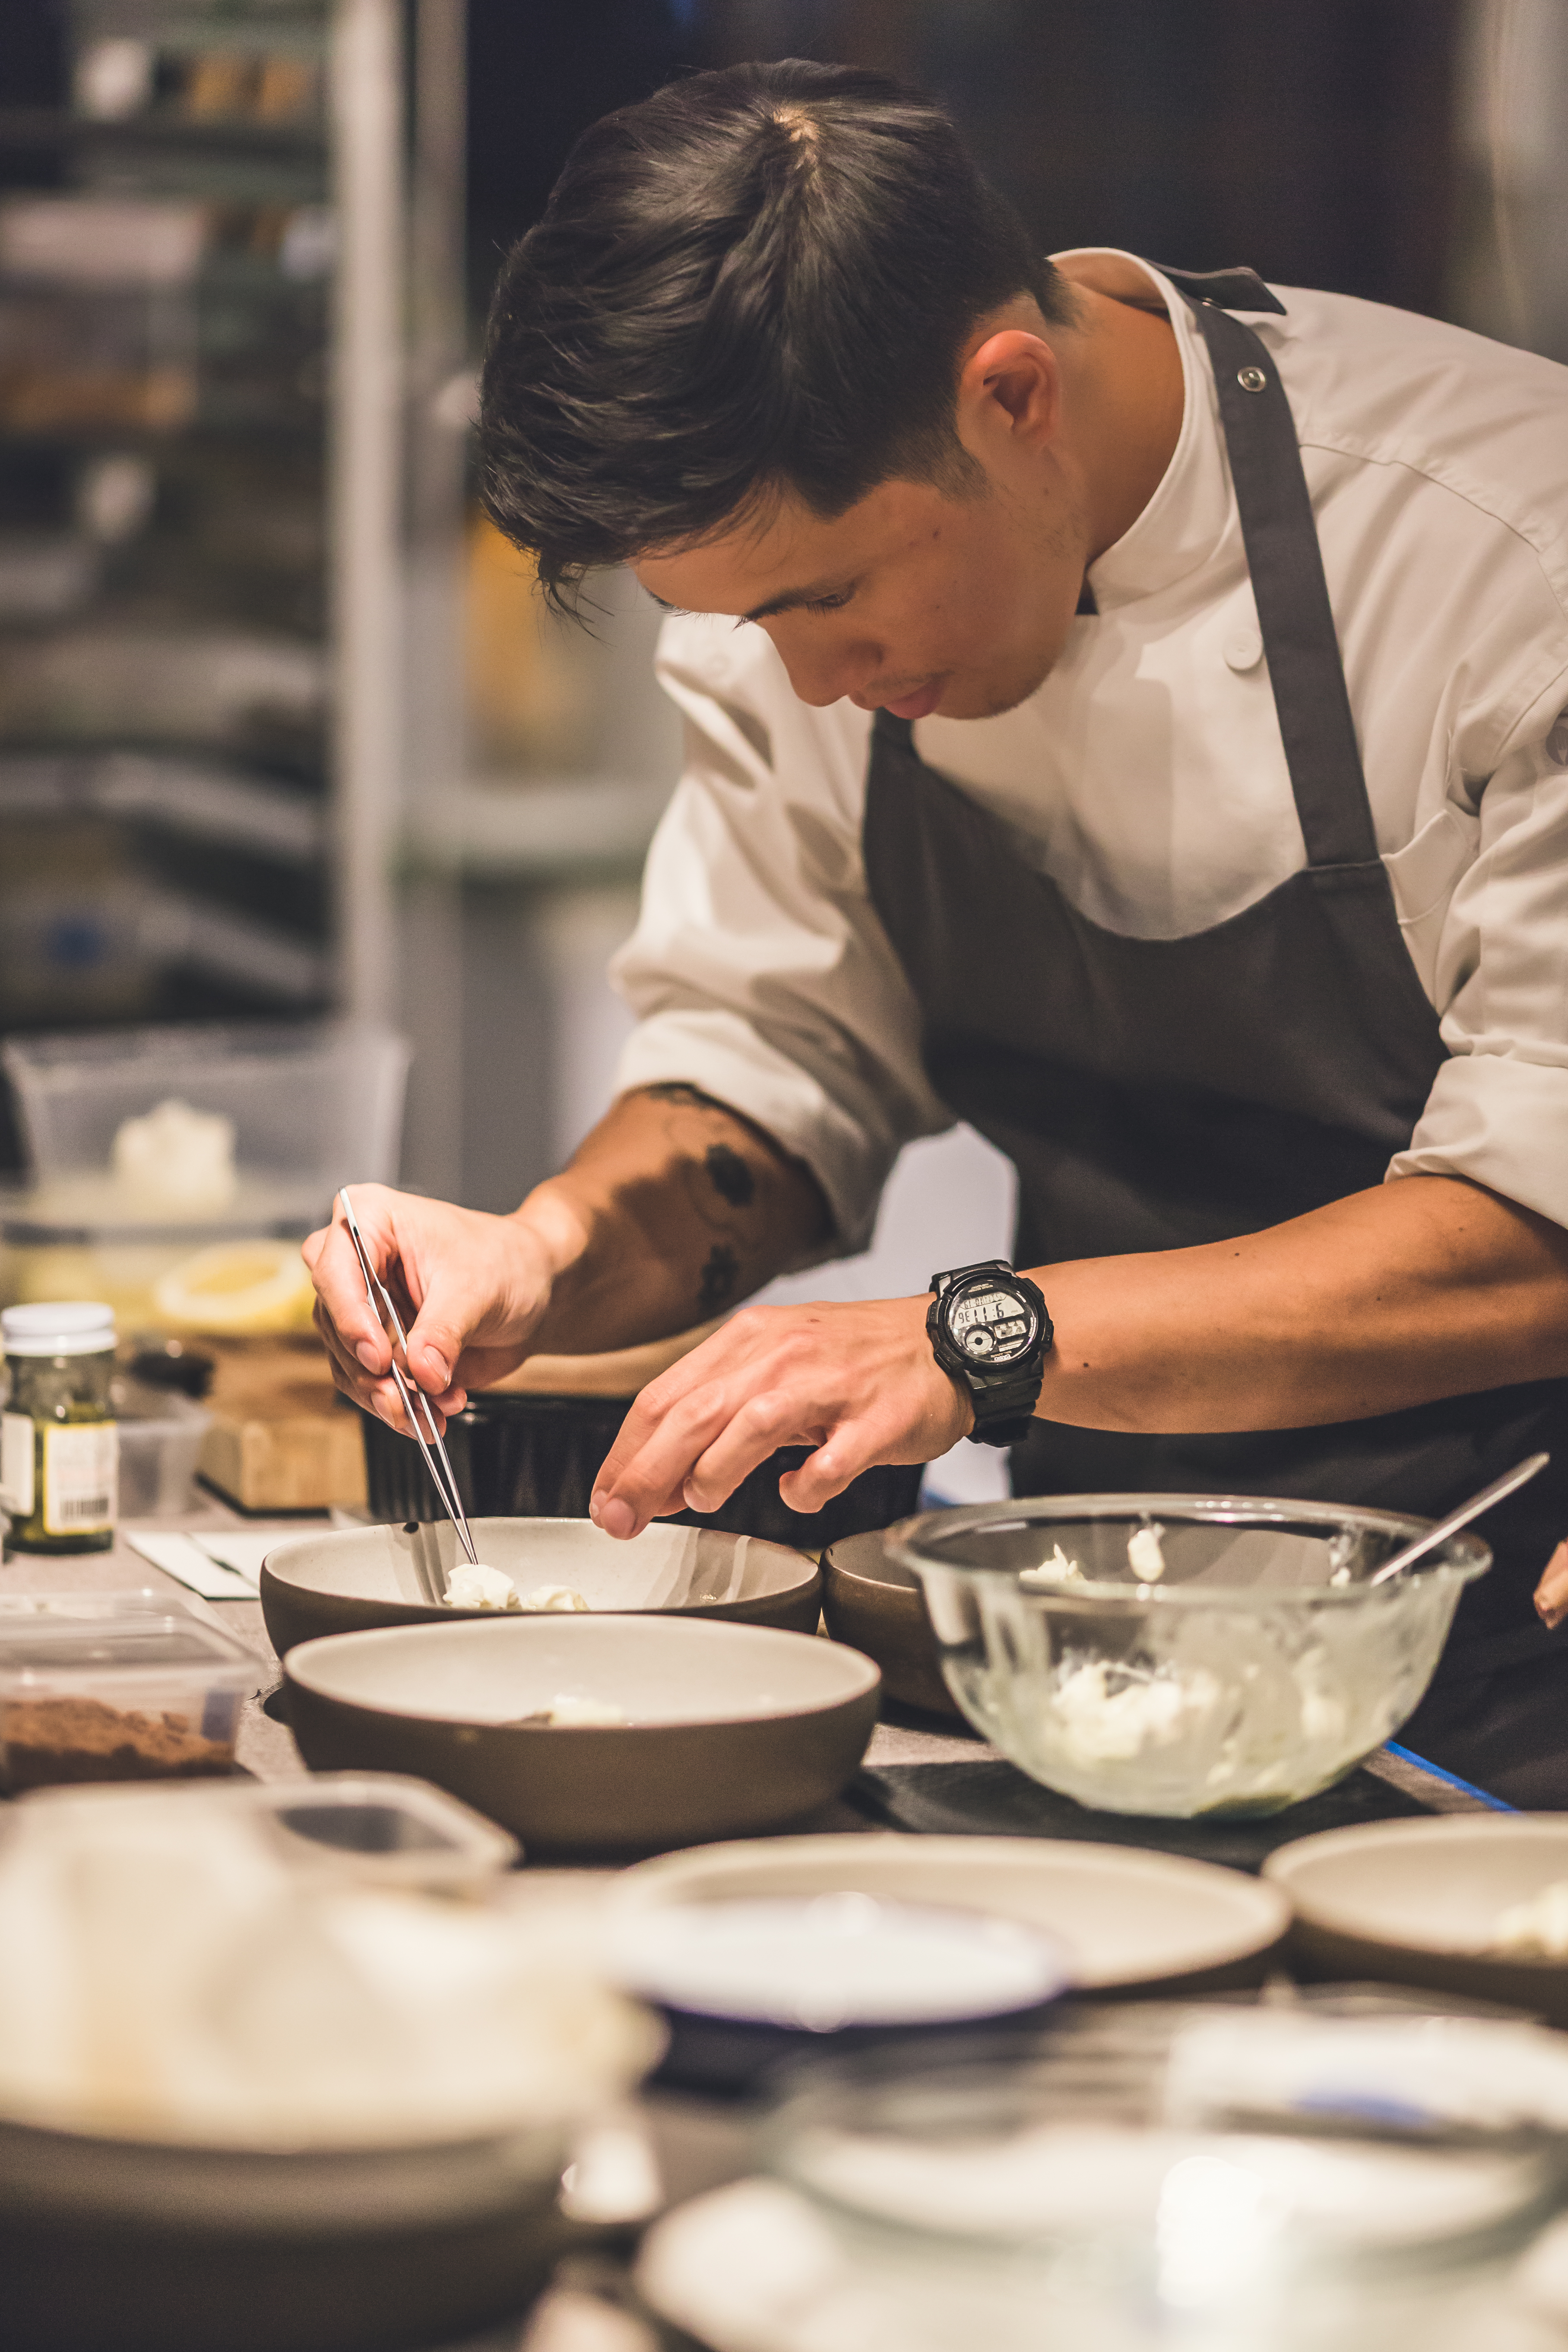 Chef Chris Kong cooks up a storm in the kitchen. Photo: Dearborn SG